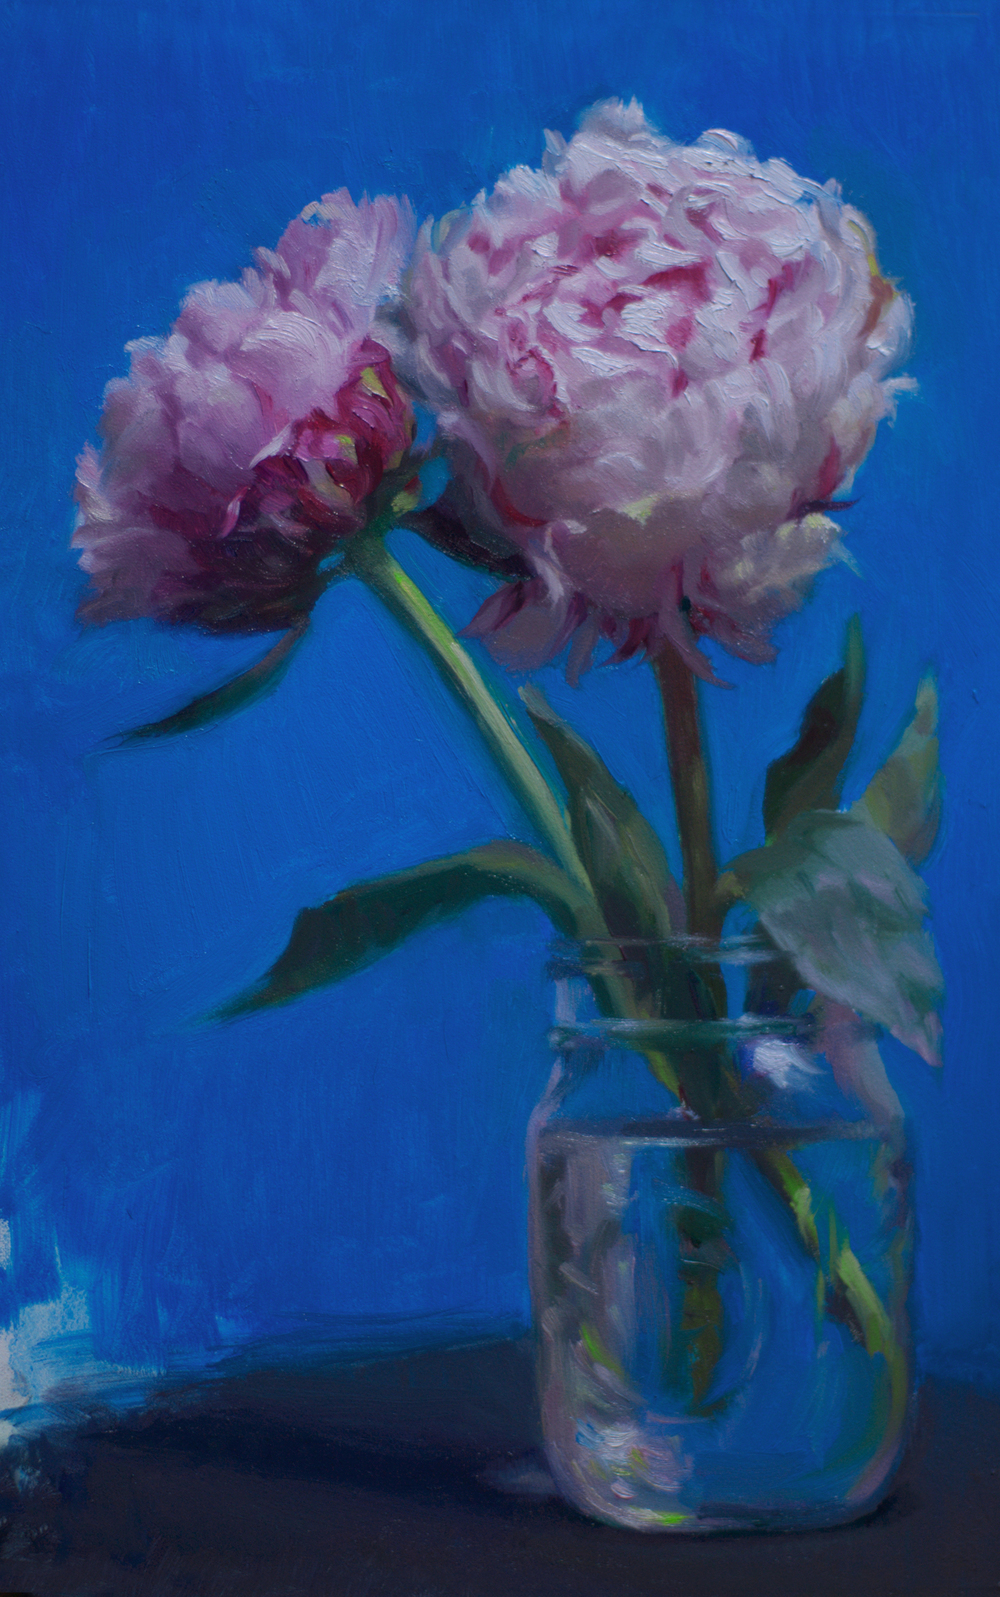 peonies_in_glass_150.jpg